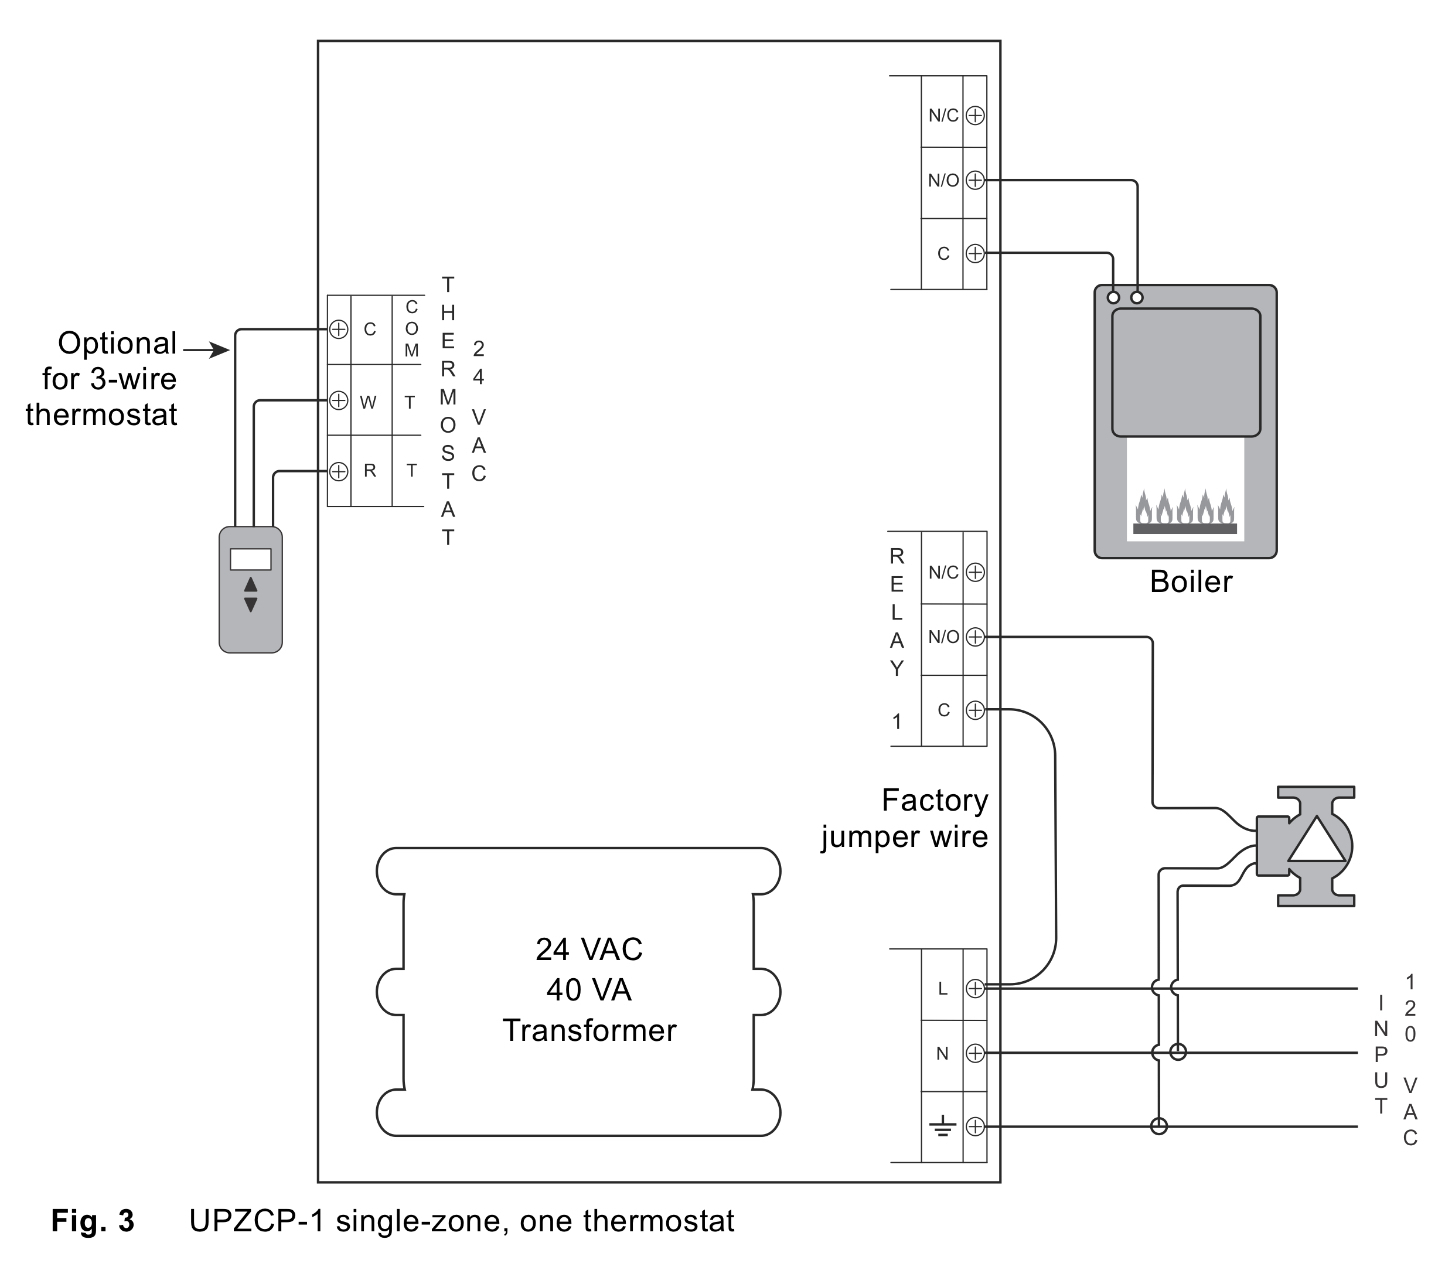 white rodgers relay wiring diagram Download-White Rodgers 90 290q Wiring Diagram Collection Also included here is the wiring schematic for 7-l